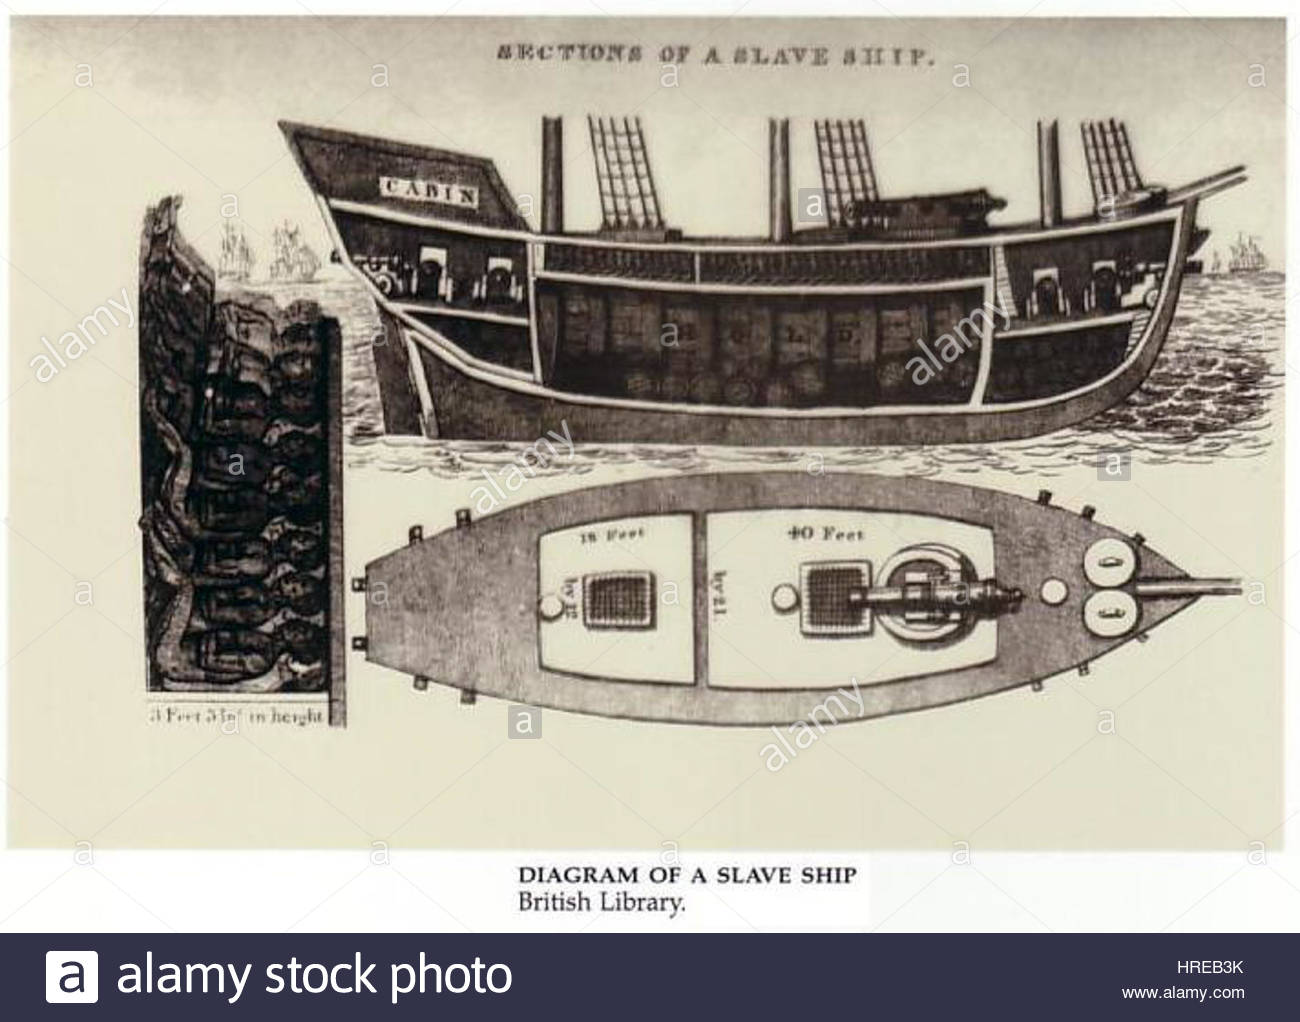 Diagram of a slave ship stock photo 134925719 alamy diagram of a slave ship pooptronica Images